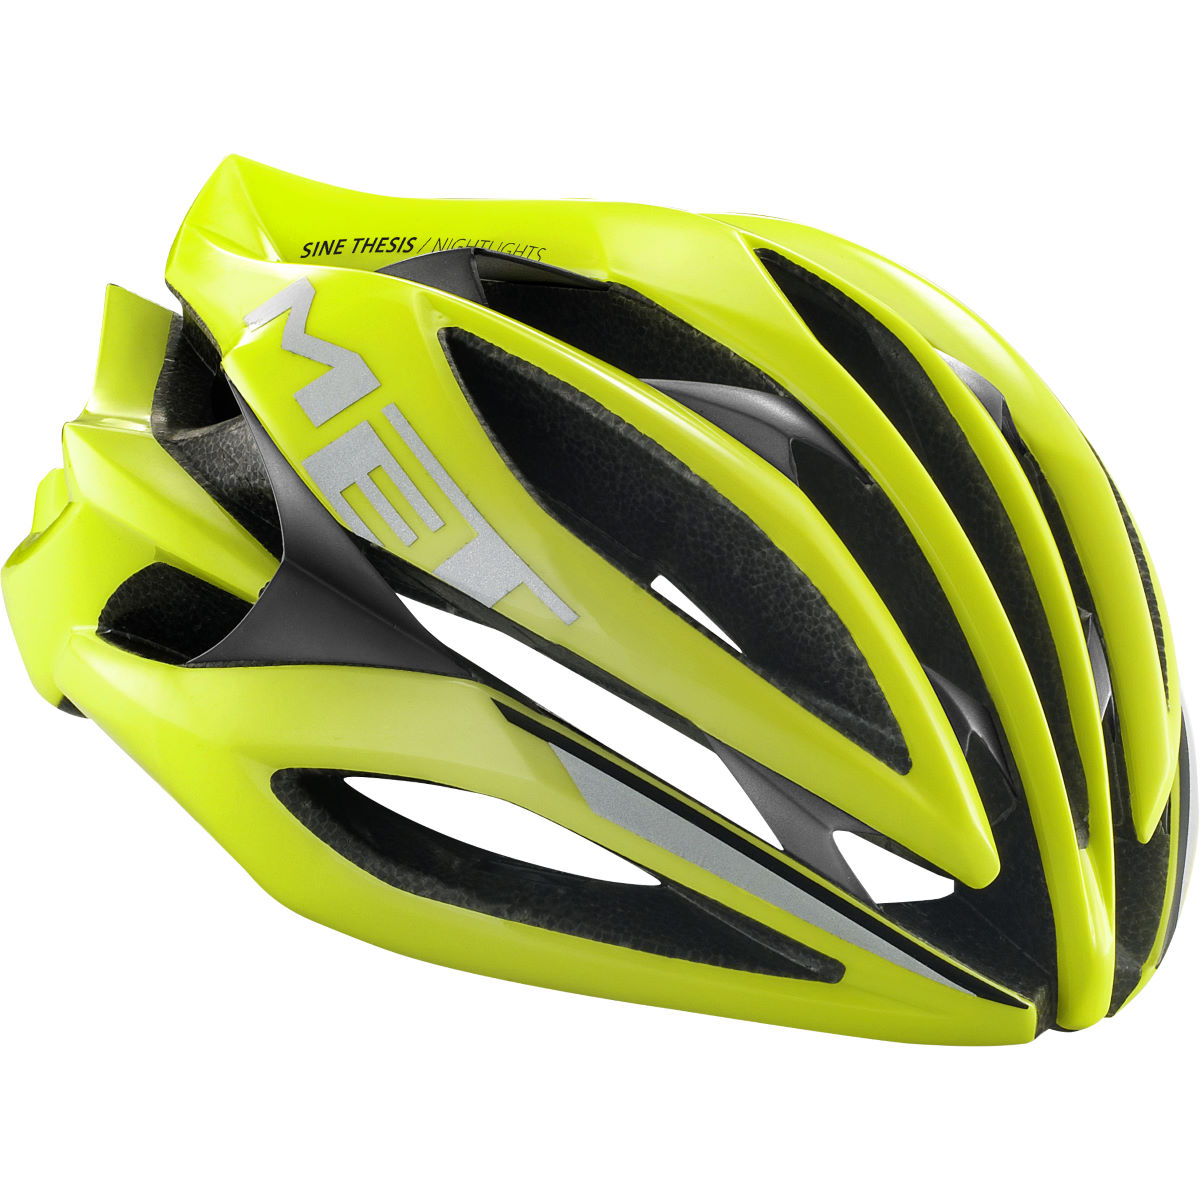 Casque de route MET Sine Thesis - L Jaune Casques de route